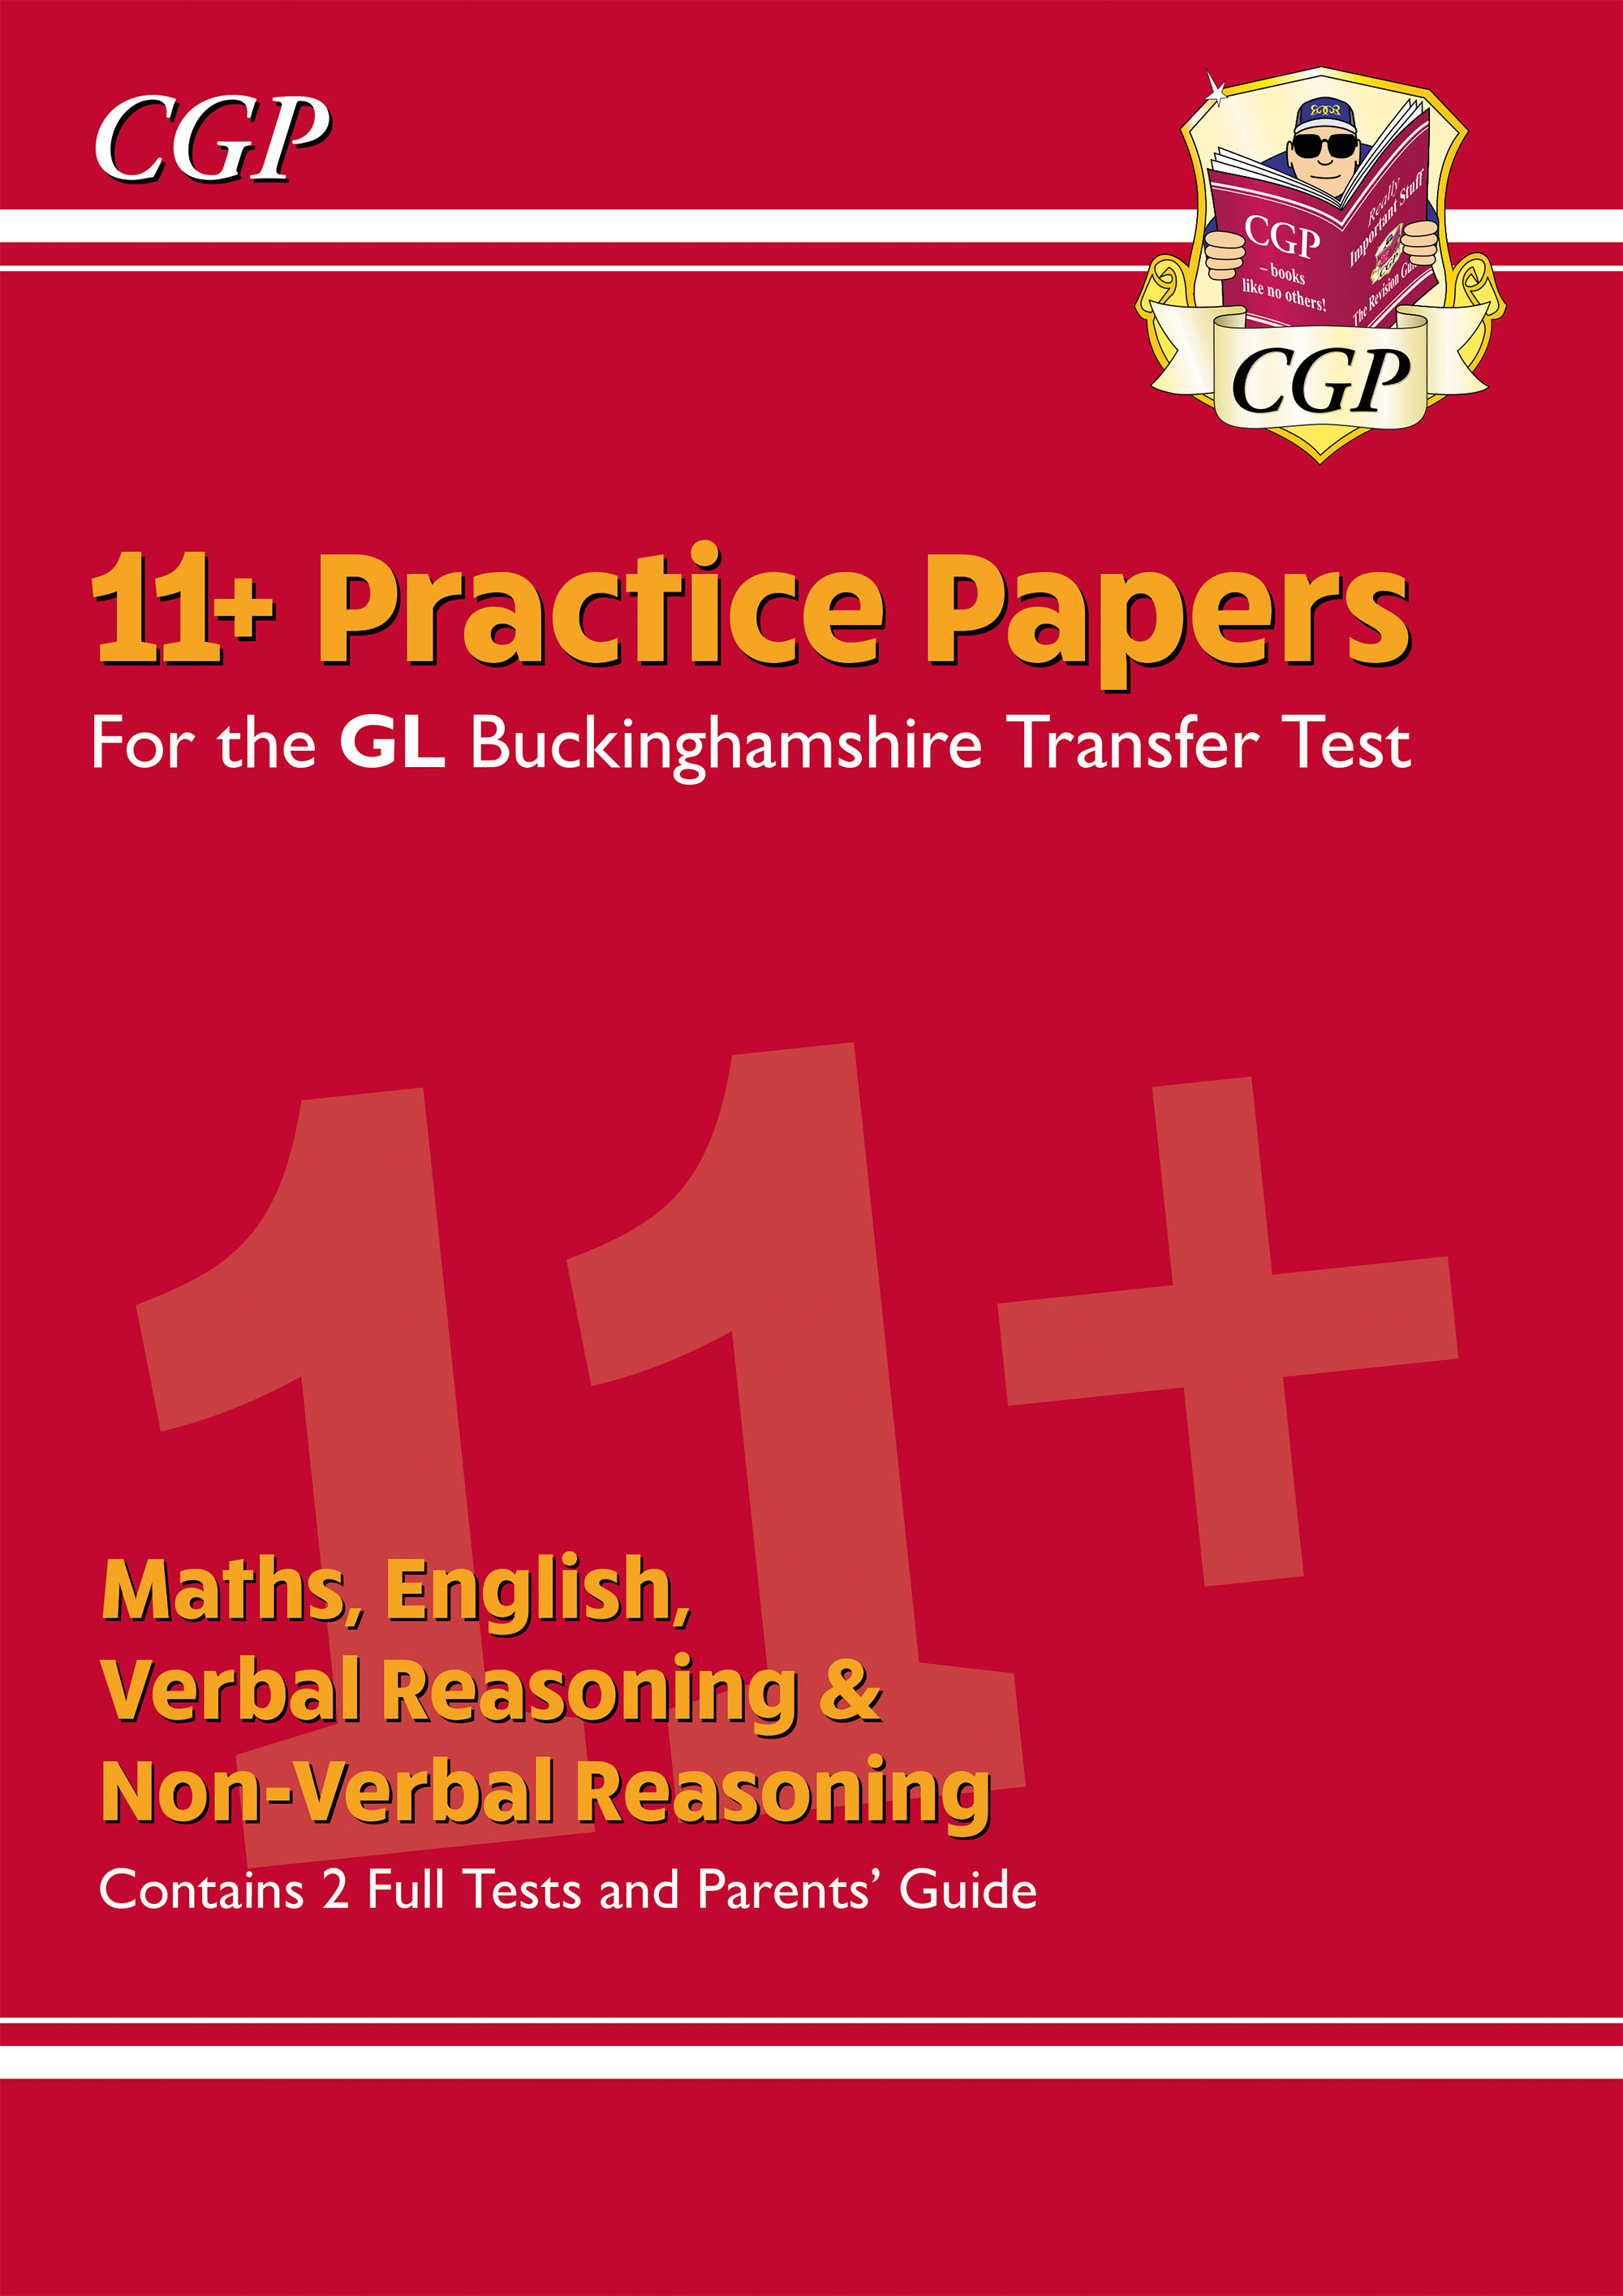 ELPCE3DK - New Buckinghamshire 11+ GL Practice Papers: Secondary Transfer Test (inc Parents' Guide)